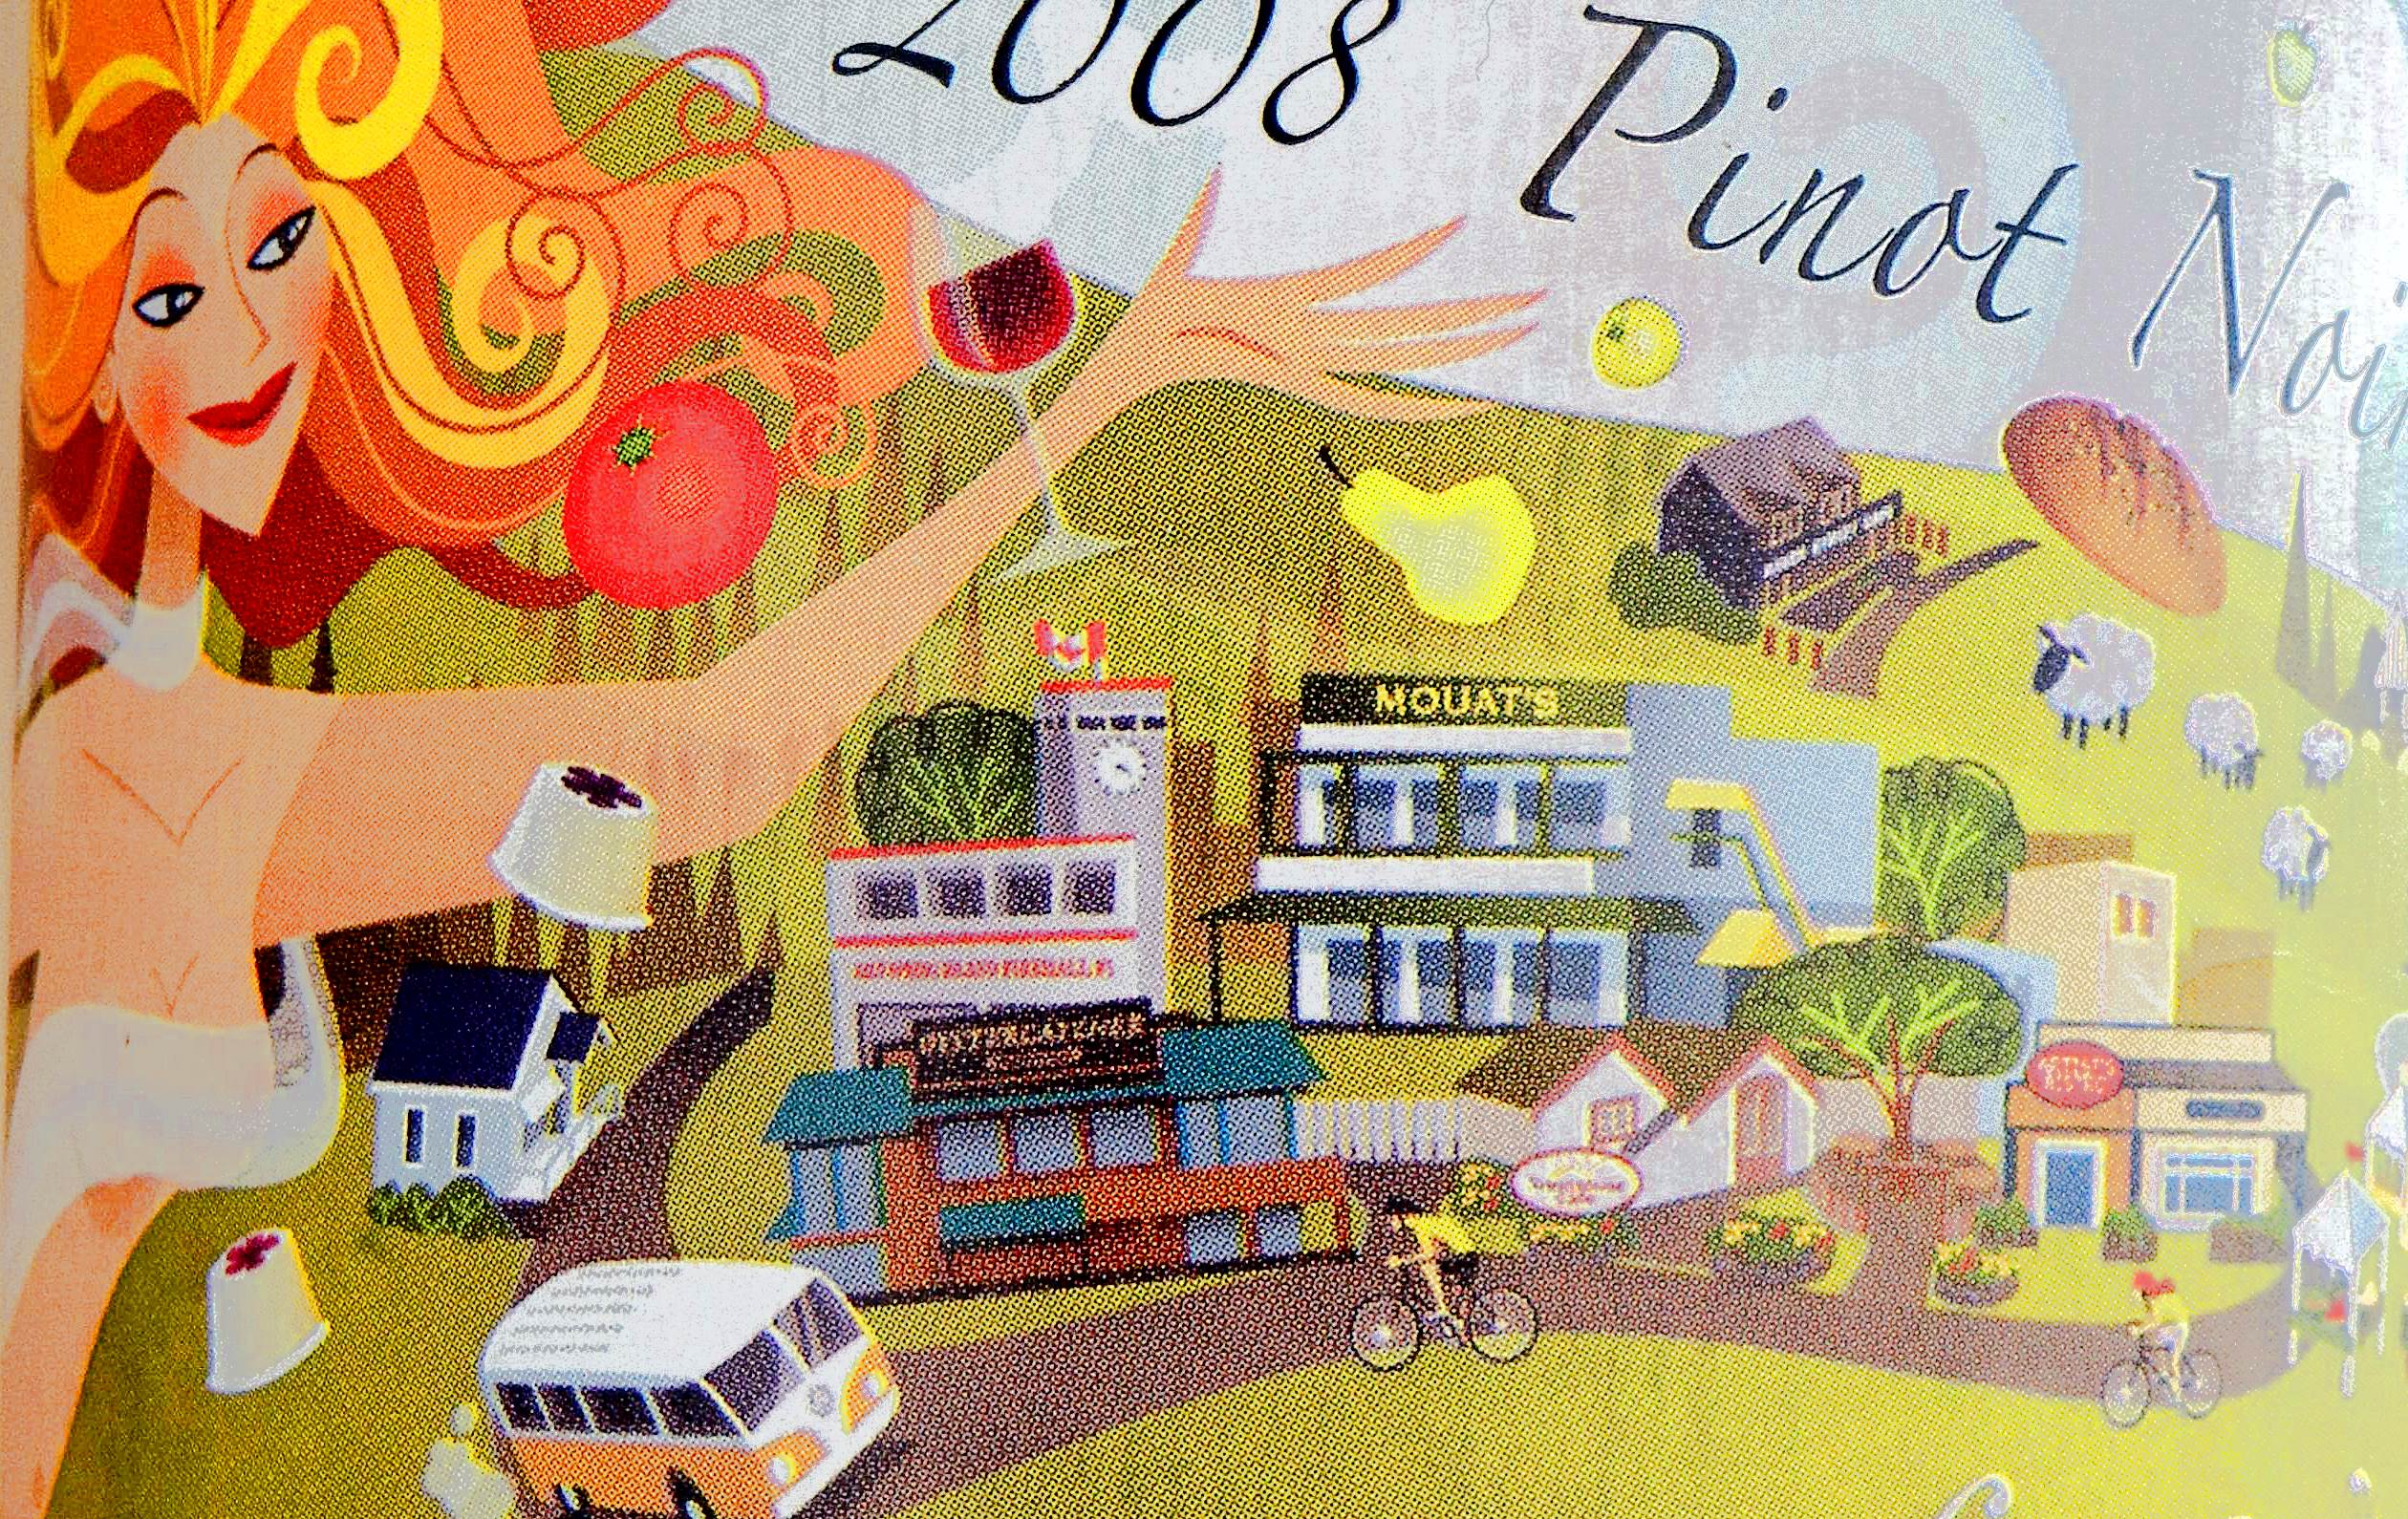 Salt Spring Pinot Noir 2008 Label Detail